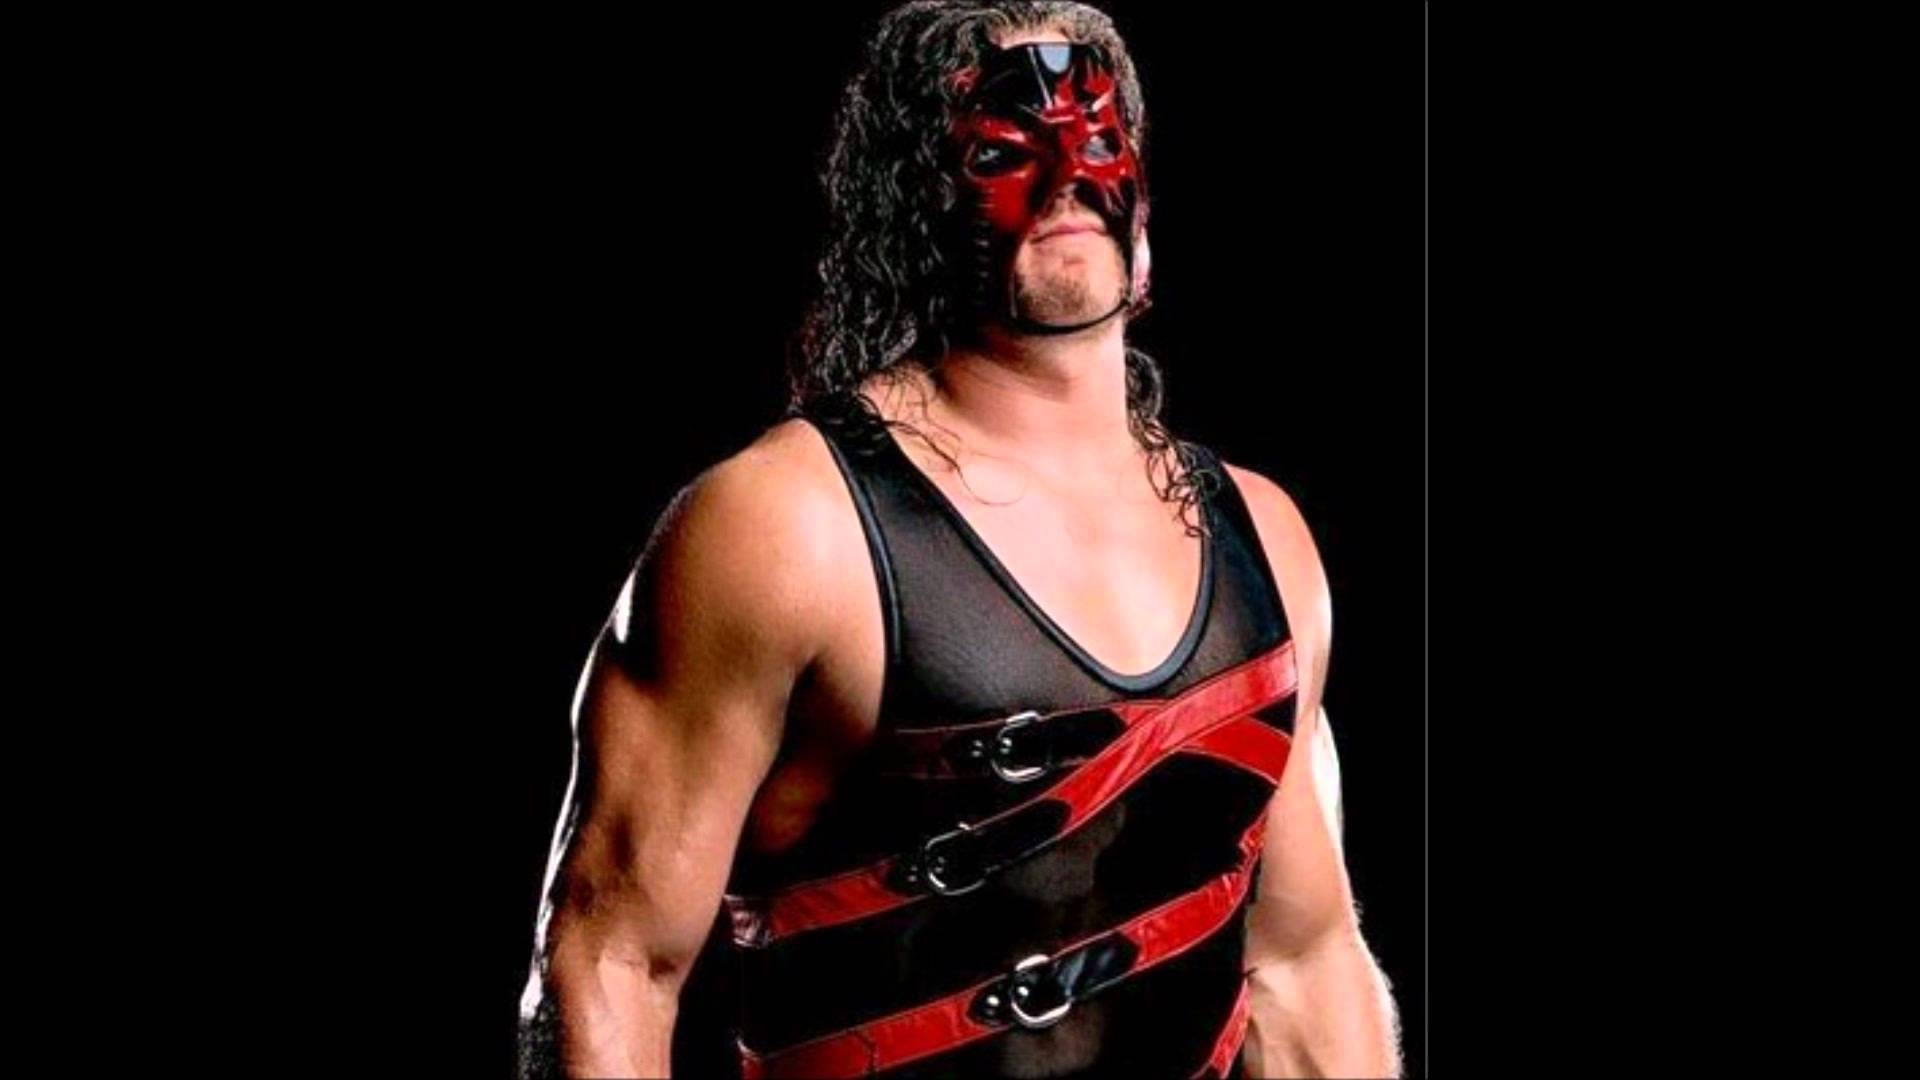 kane wwe free hd desktop background wallpaper